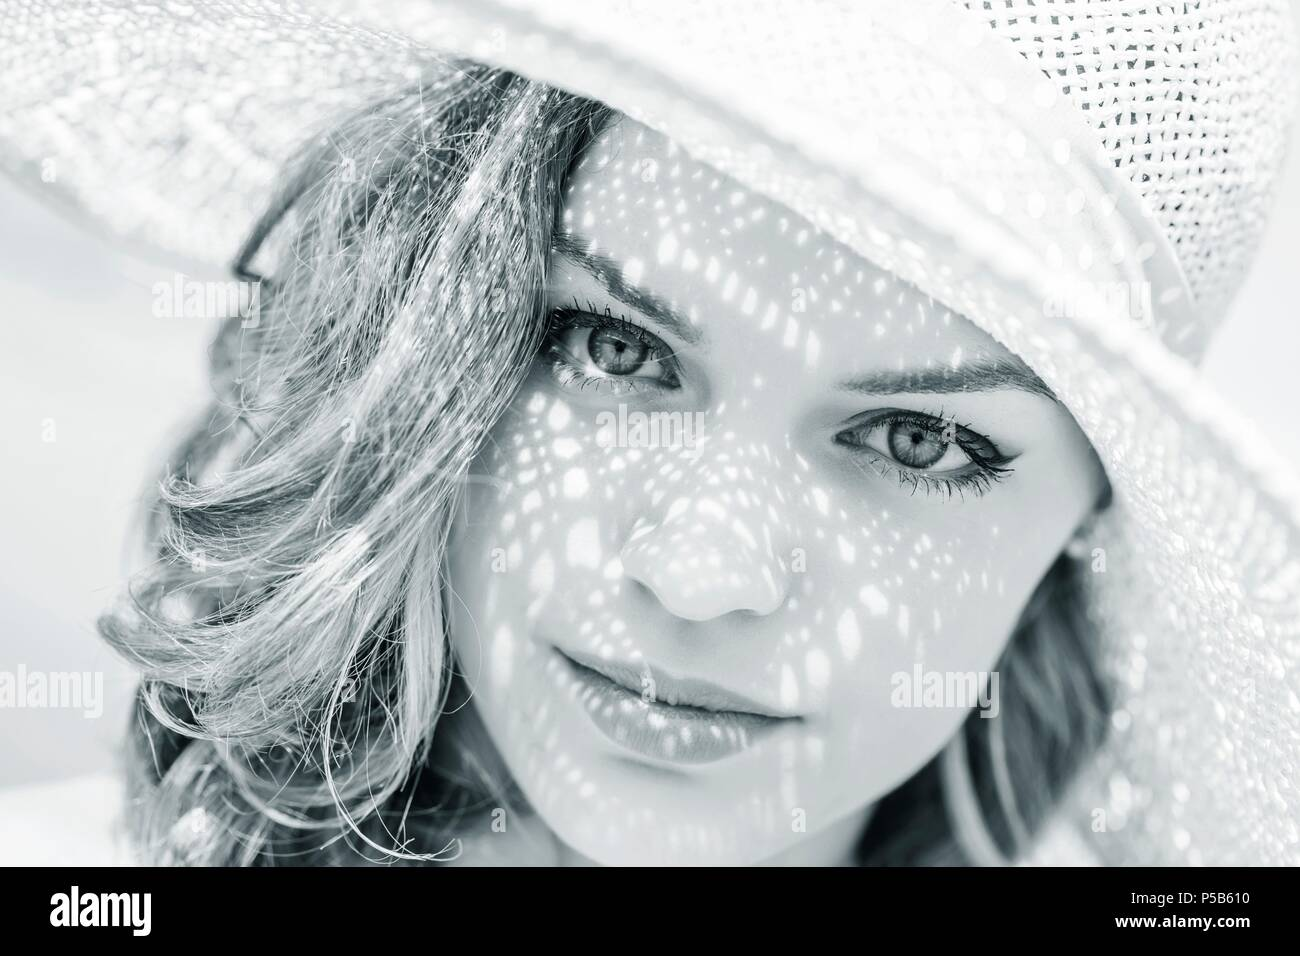 Beauty teenager with hat on head face closeup portrait looking at camera serious fine-art fineart artistic arty Stock Photo